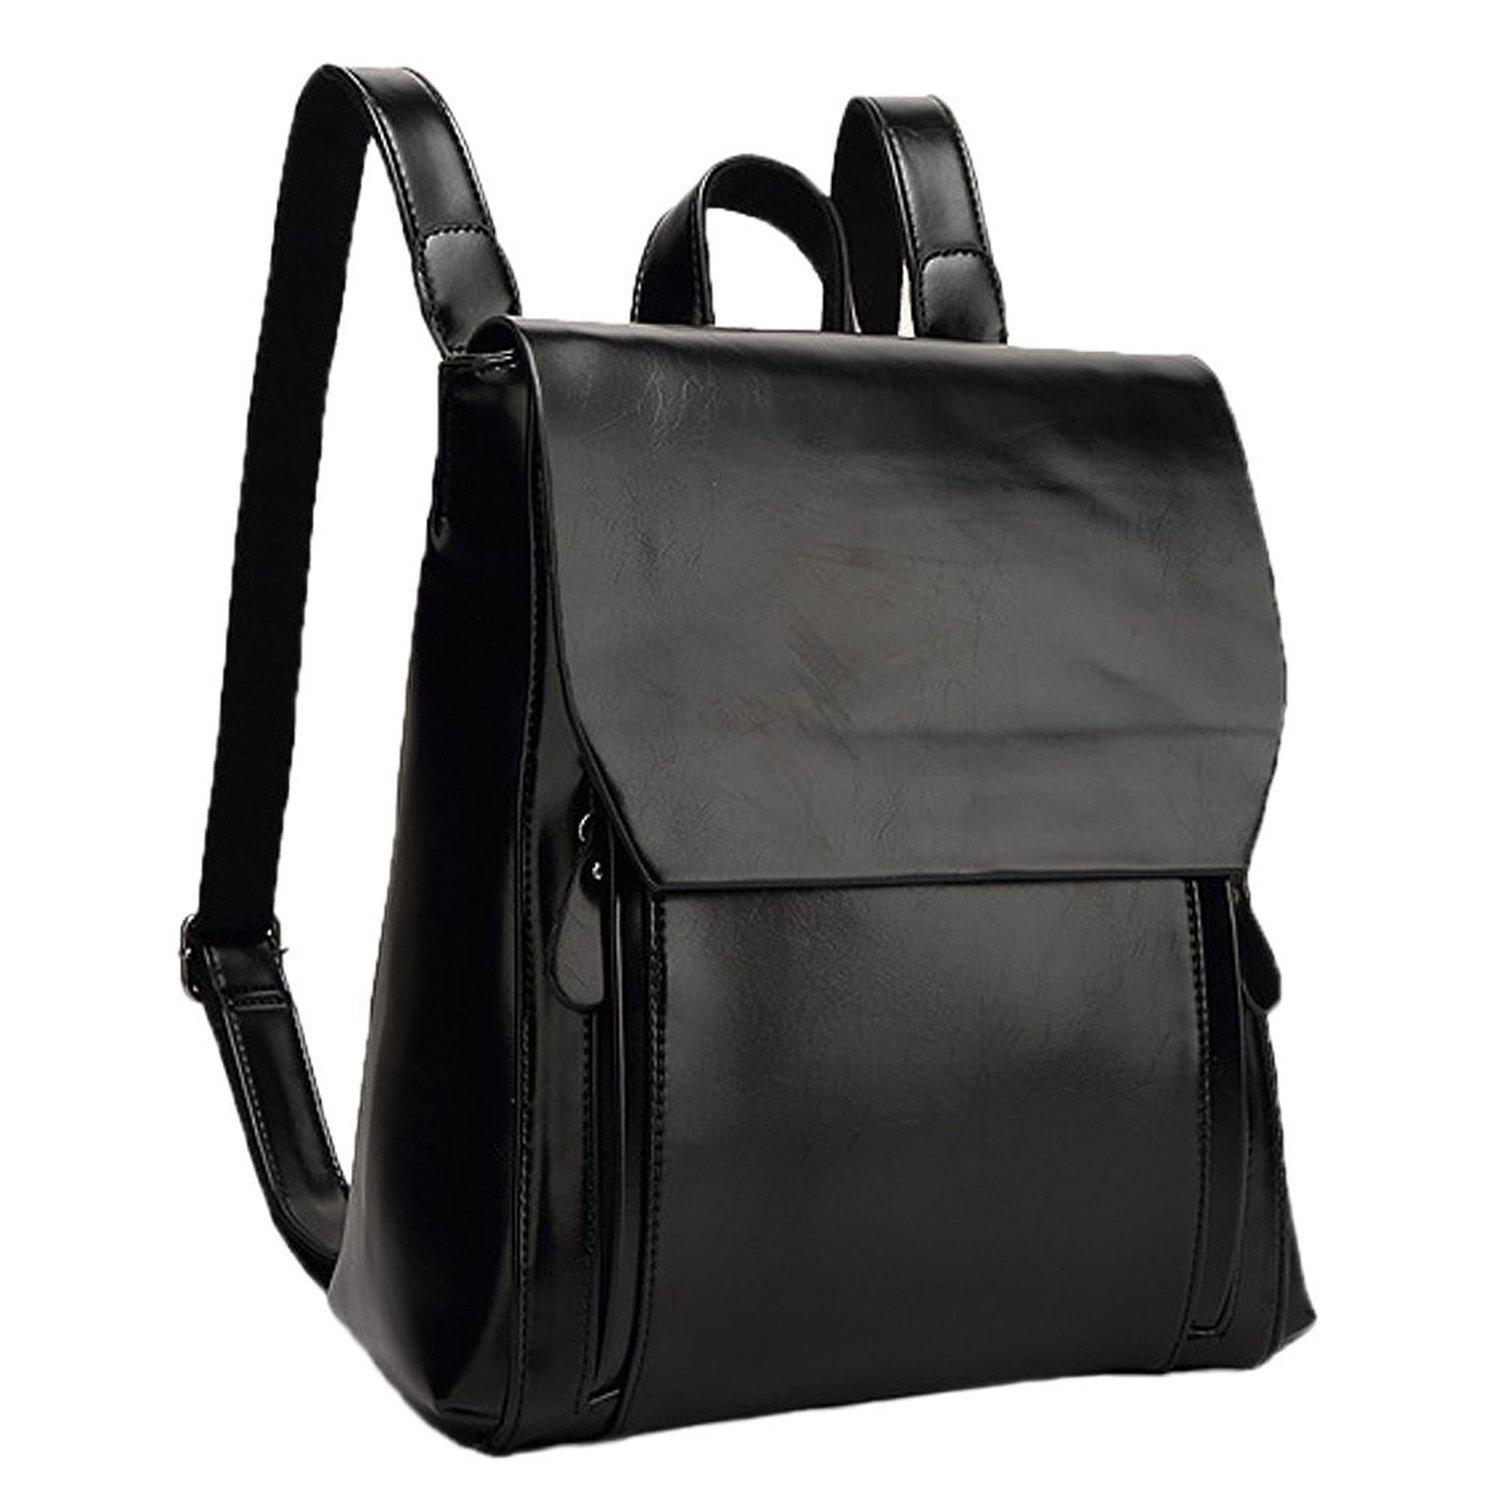 Black Leather Backpacks For Women Crazy Backpacks